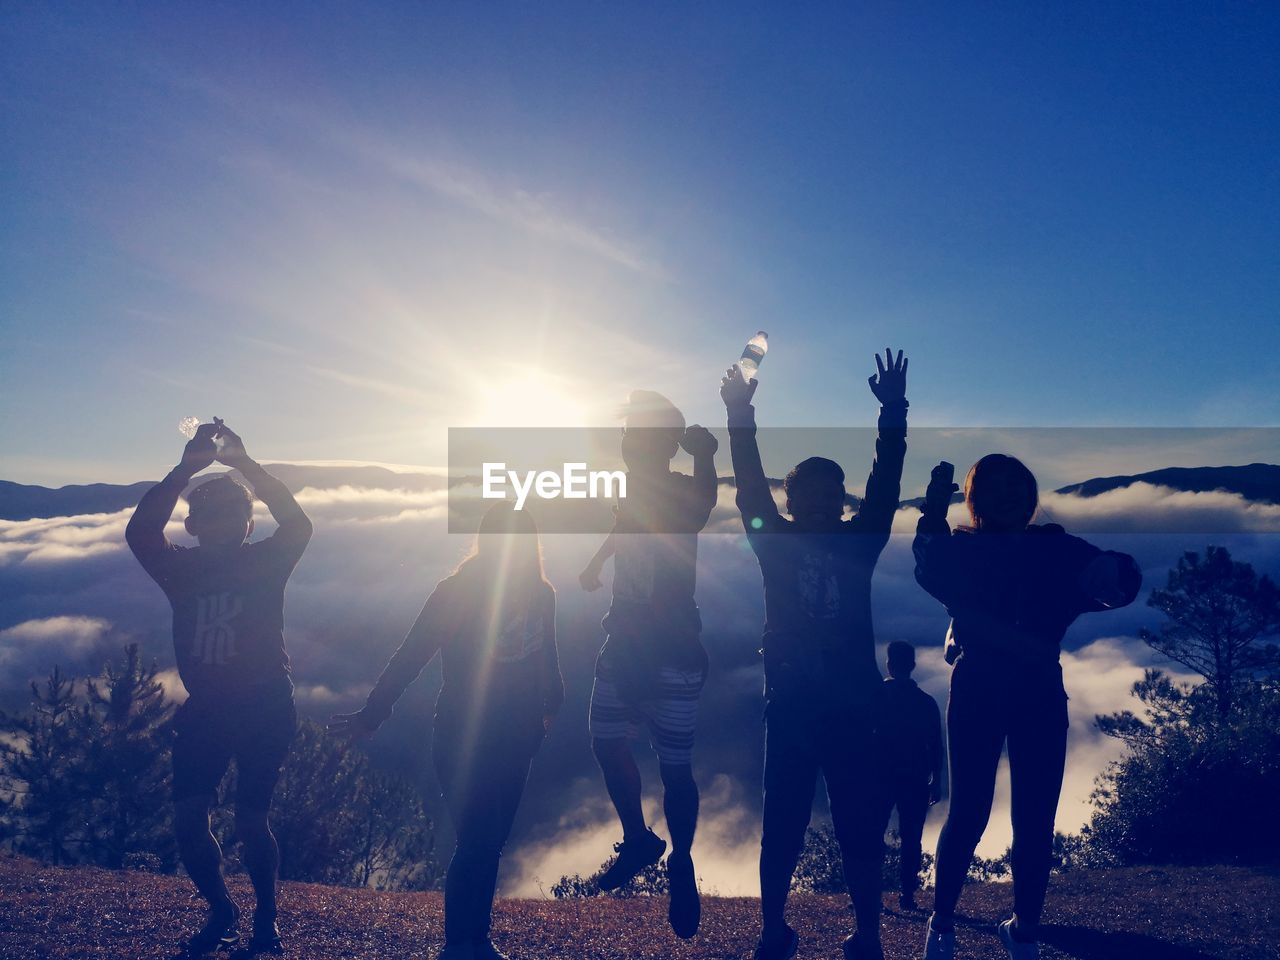 sky, group of people, real people, leisure activity, arms raised, human arm, togetherness, lifestyles, friendship, sunlight, men, land, women, lens flare, nature, standing, emotion, enjoyment, positive emotion, sun, limb, outdoors, excitement, bright